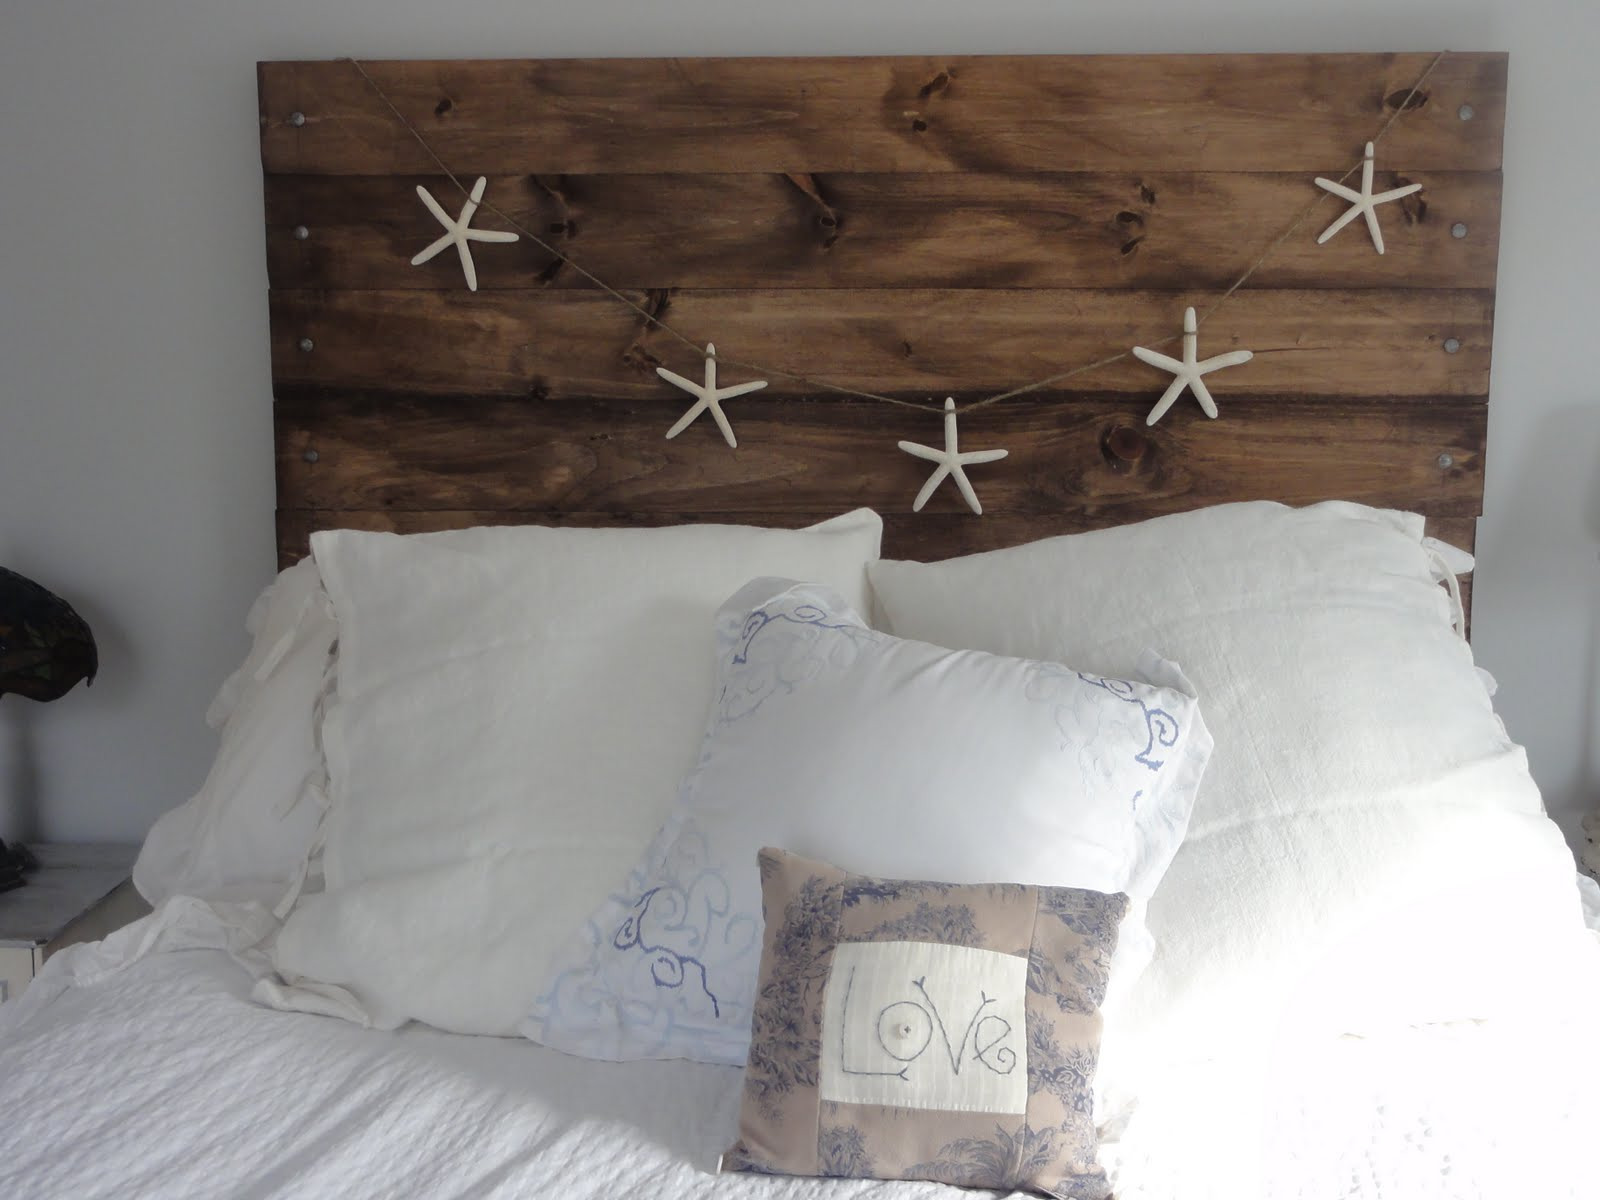 How to have the bedroom of your dreams with simple tips.